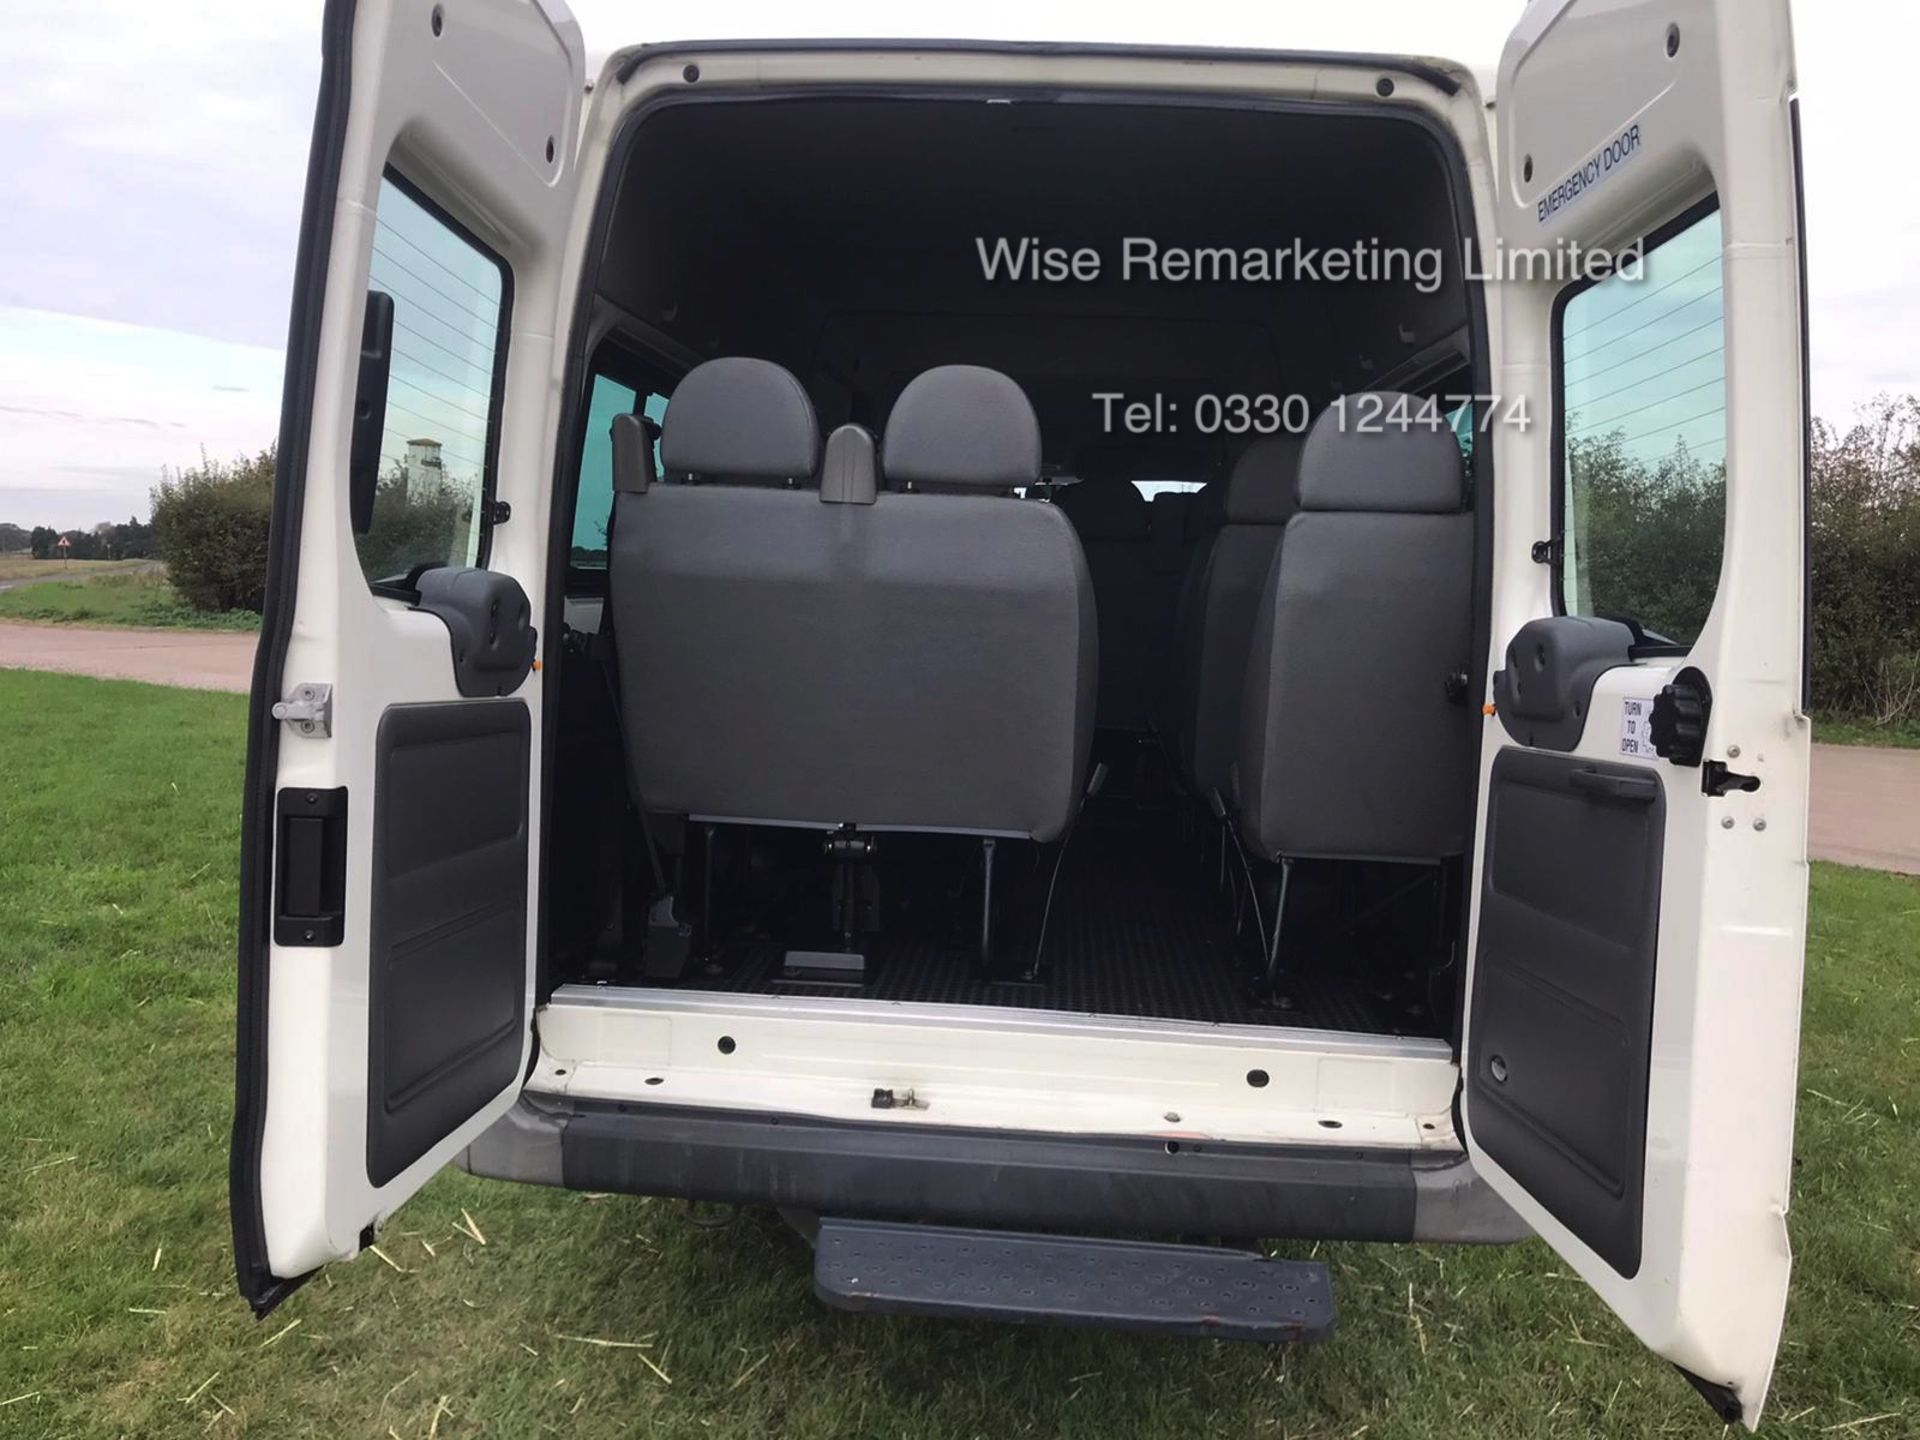 Lot 44 - Ford Transit Minibus 2.4l (17 Seater) - 2005 Model - Service History - 1 Keeper - Only 31k Miles